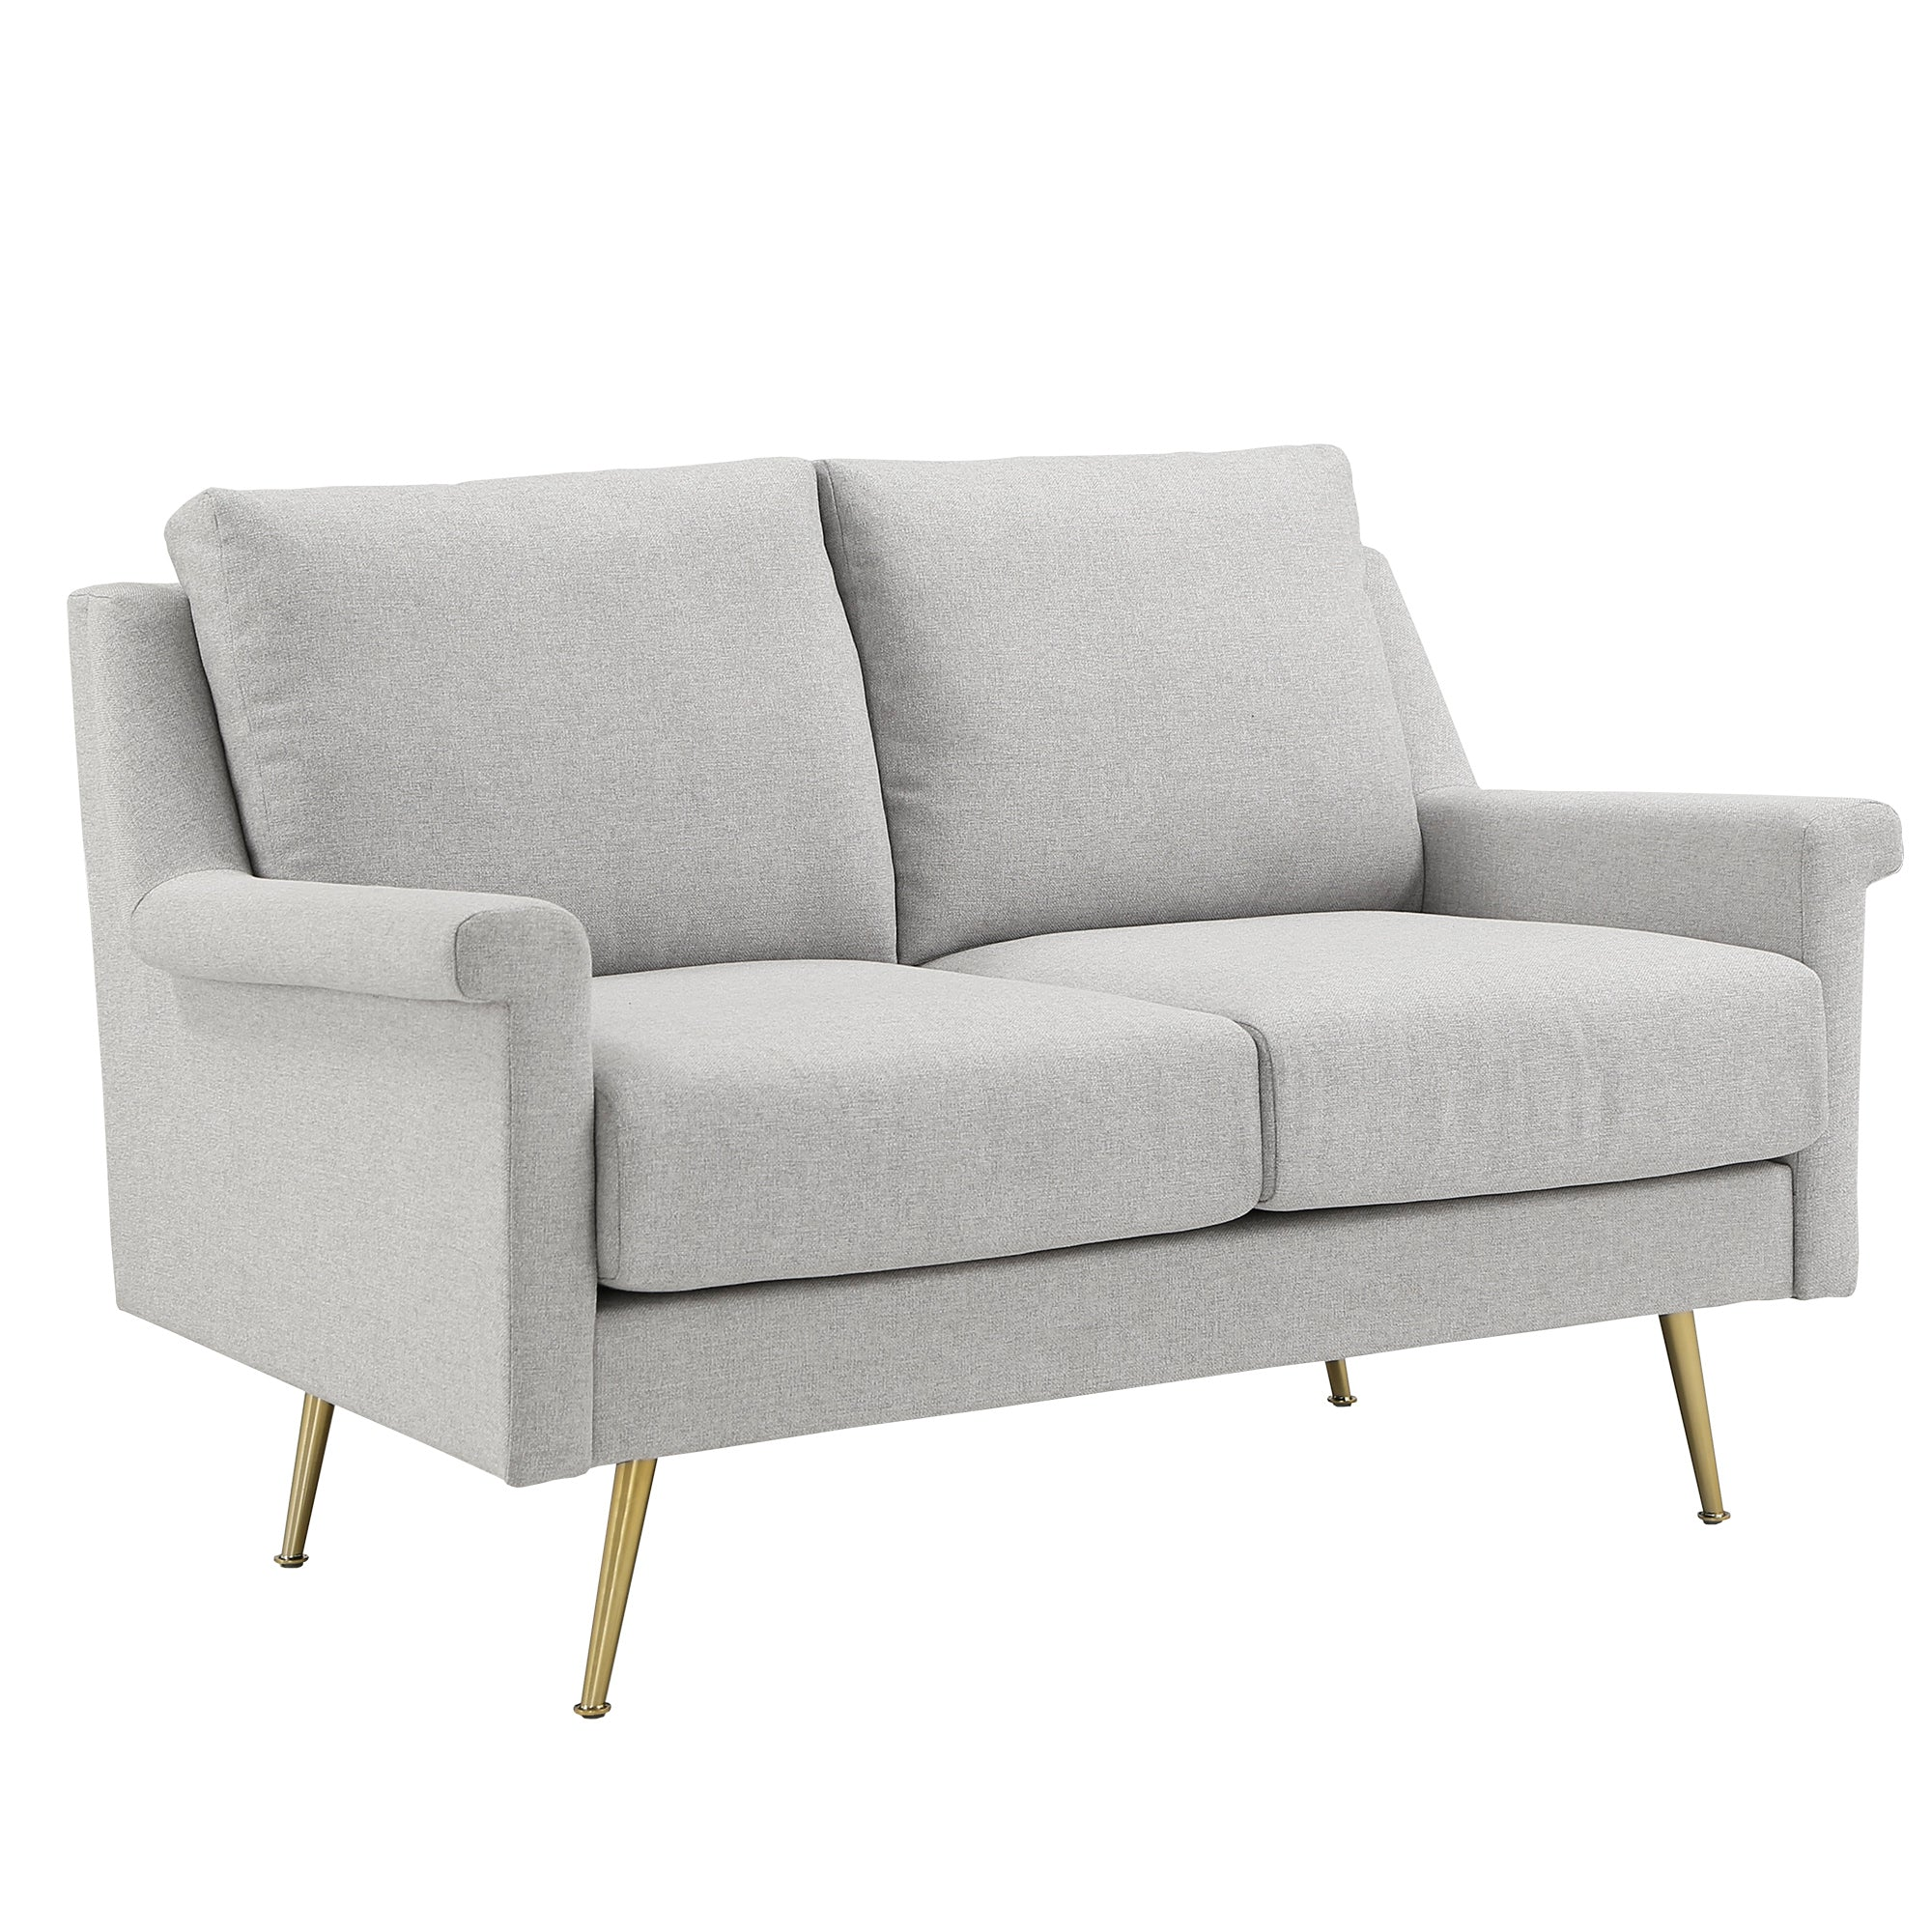 Grey Fabric Loveseat with Gold Metal Legs